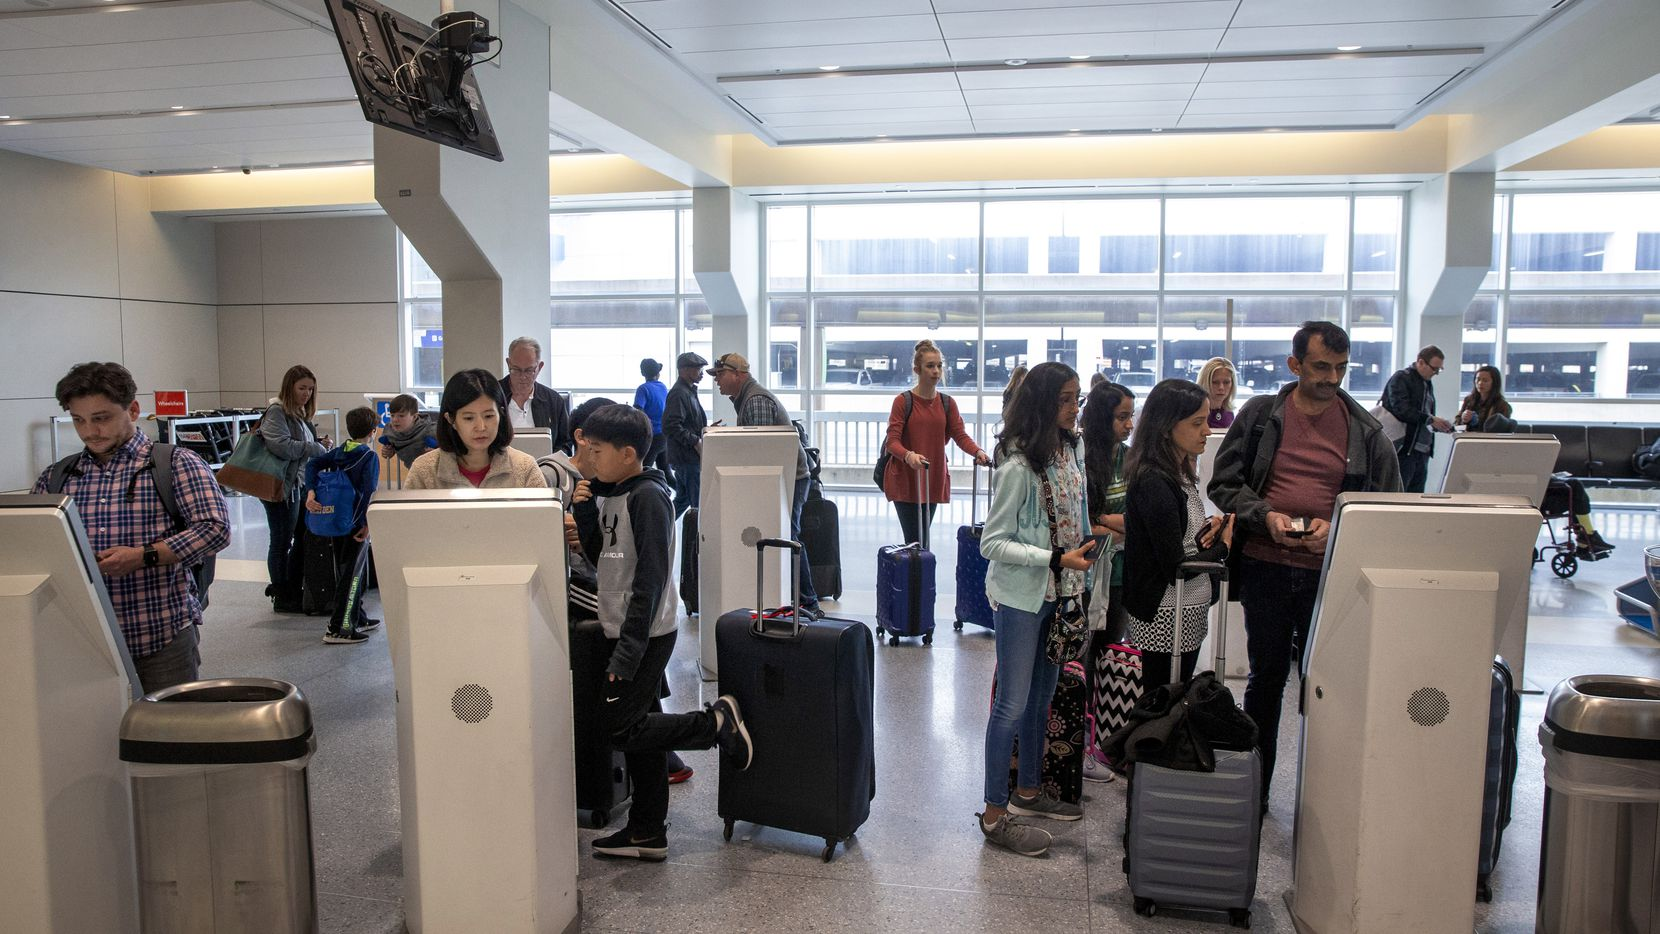 Passengers utilize the American Airlines electronic kiosks in the ticketing area of Terminal A at DFW International Airport in Irving, Texas, on Friday, November 22, 2019. American Airlines is making major changes to its apps and websites, including a system that lets customers make their own bids when a flight is overcrowded. (Lynda M. Gonzalez/The Dallas Morning News)